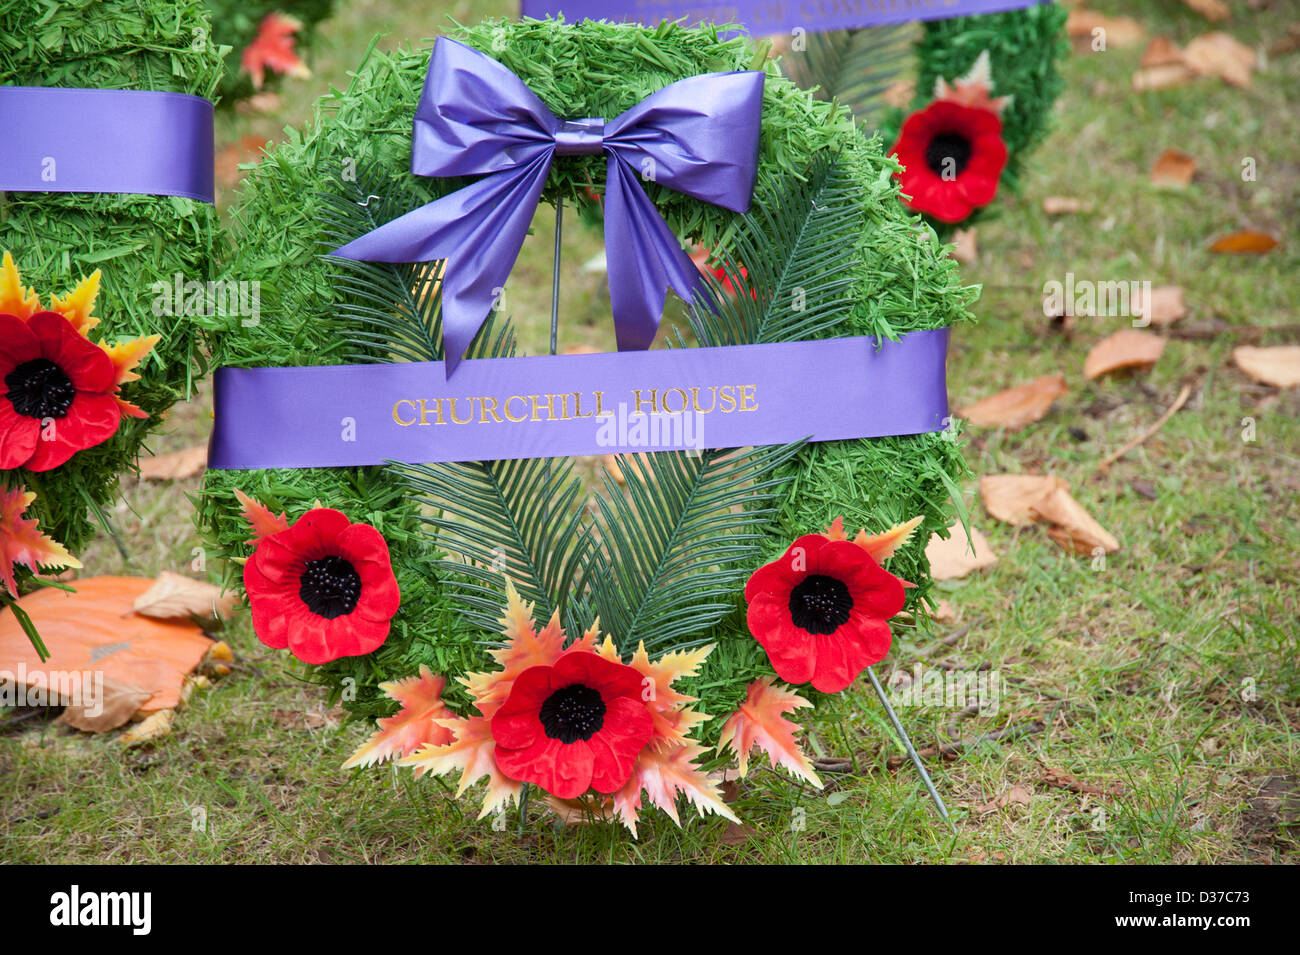 Remembrance Day wreath with poppies laying in grass - Stock Image